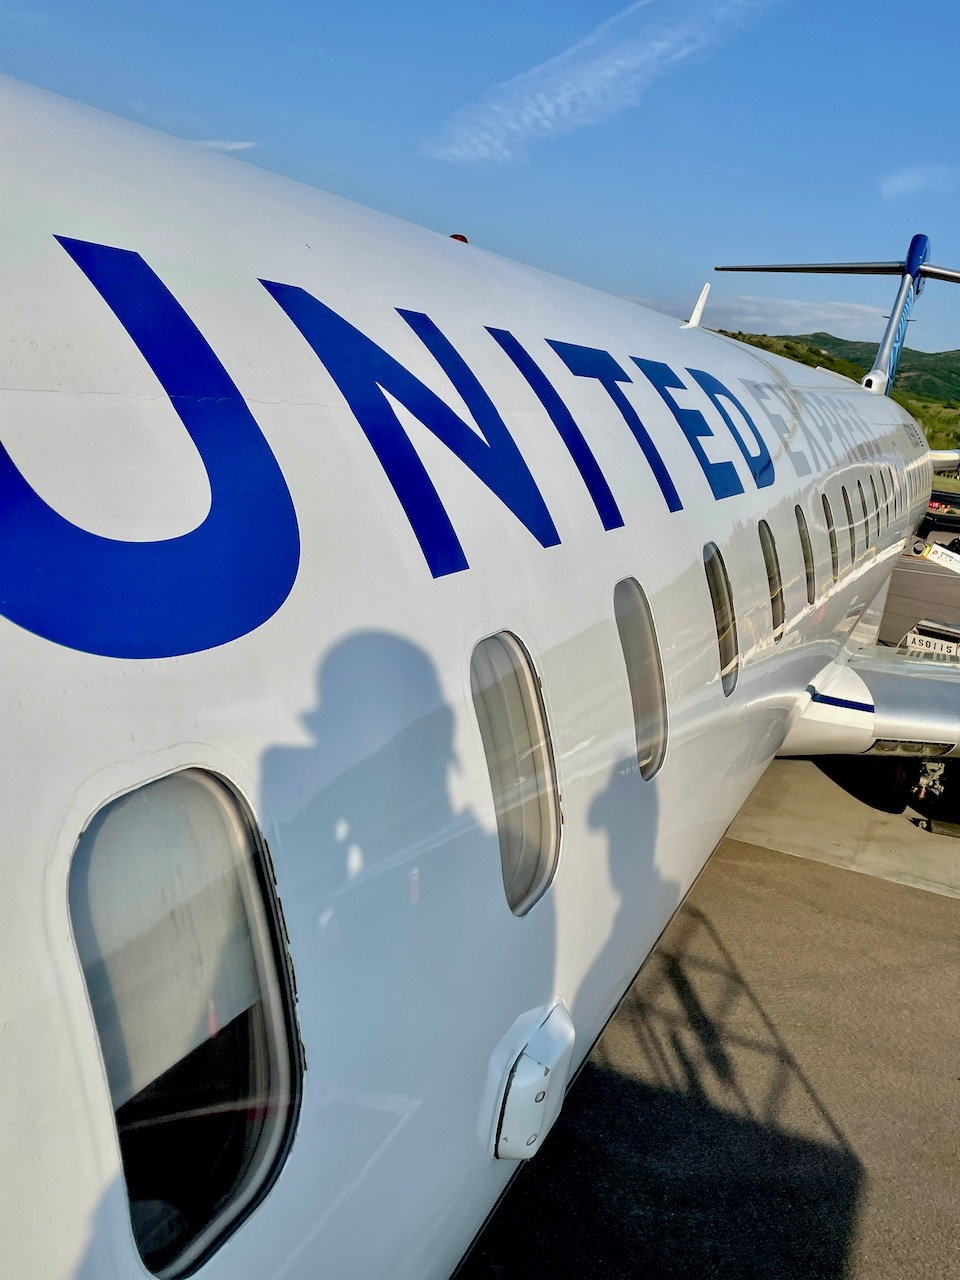 United Airlines is now demonetizing your flight credit to half value by doubling the fare when you try to use that unused ticket.